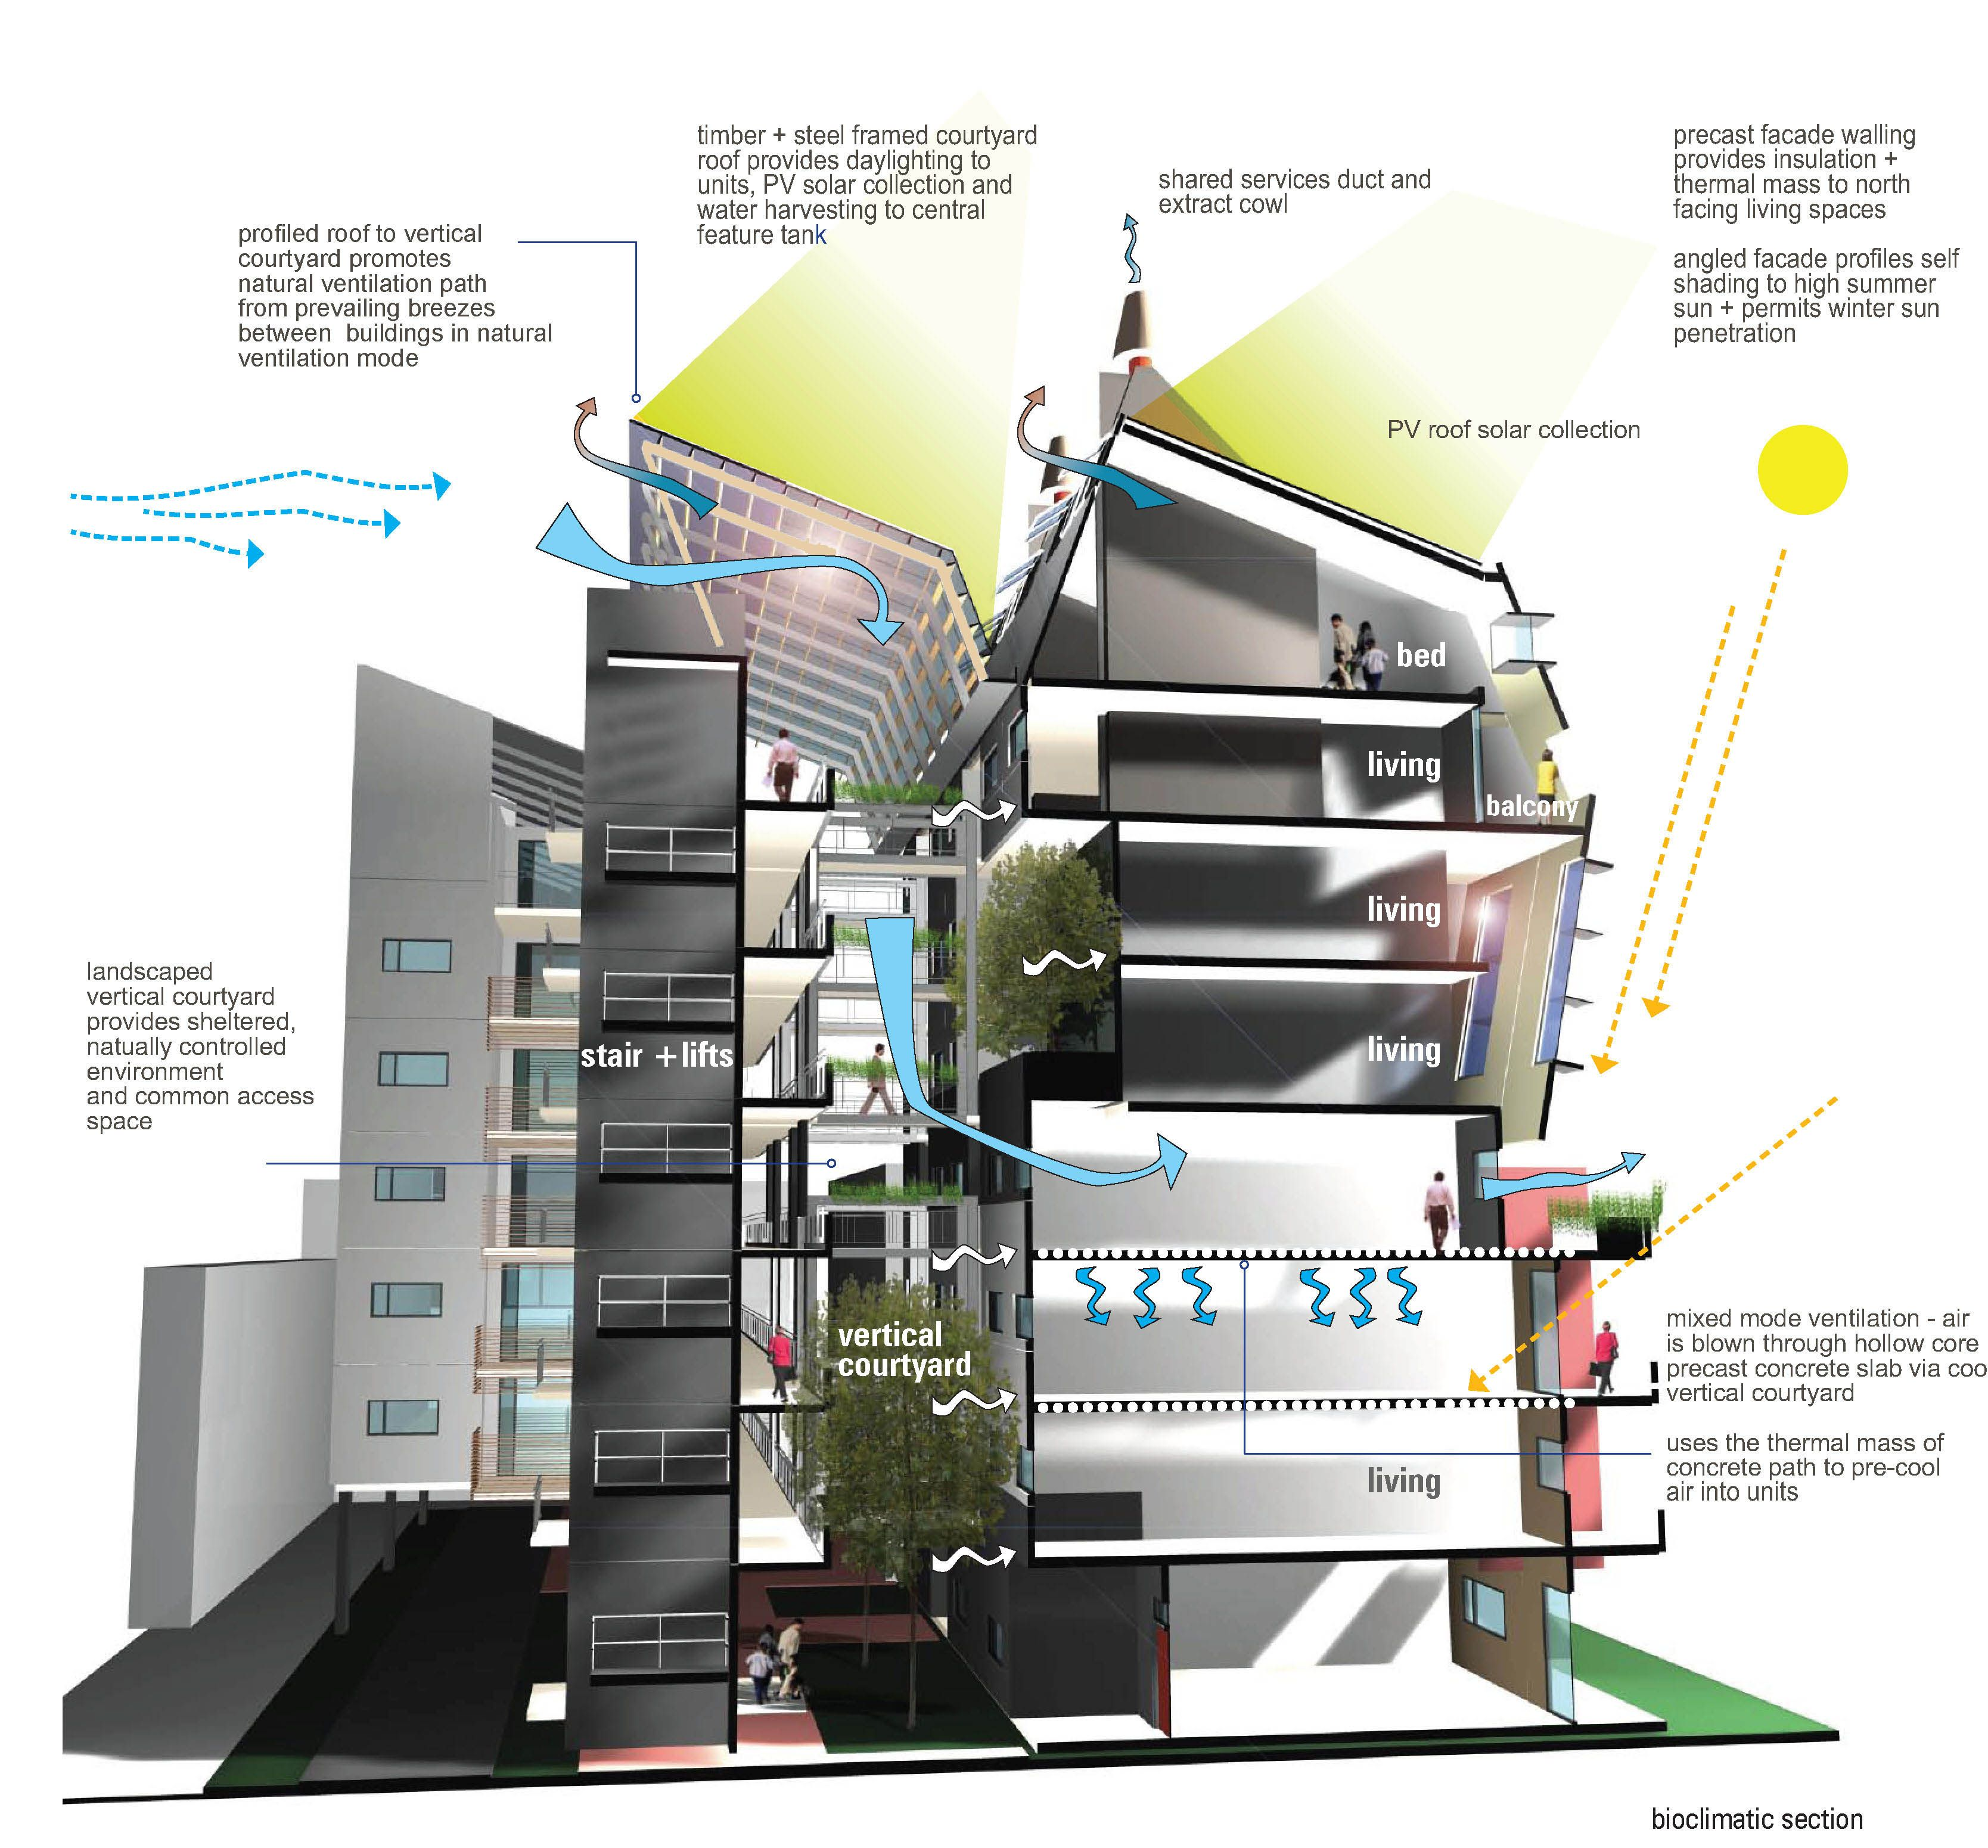 hight resolution of this diagram shows a vertical courtyard concept to promote natural ventilation on various levels of the building while also utilizing prevailing breezes